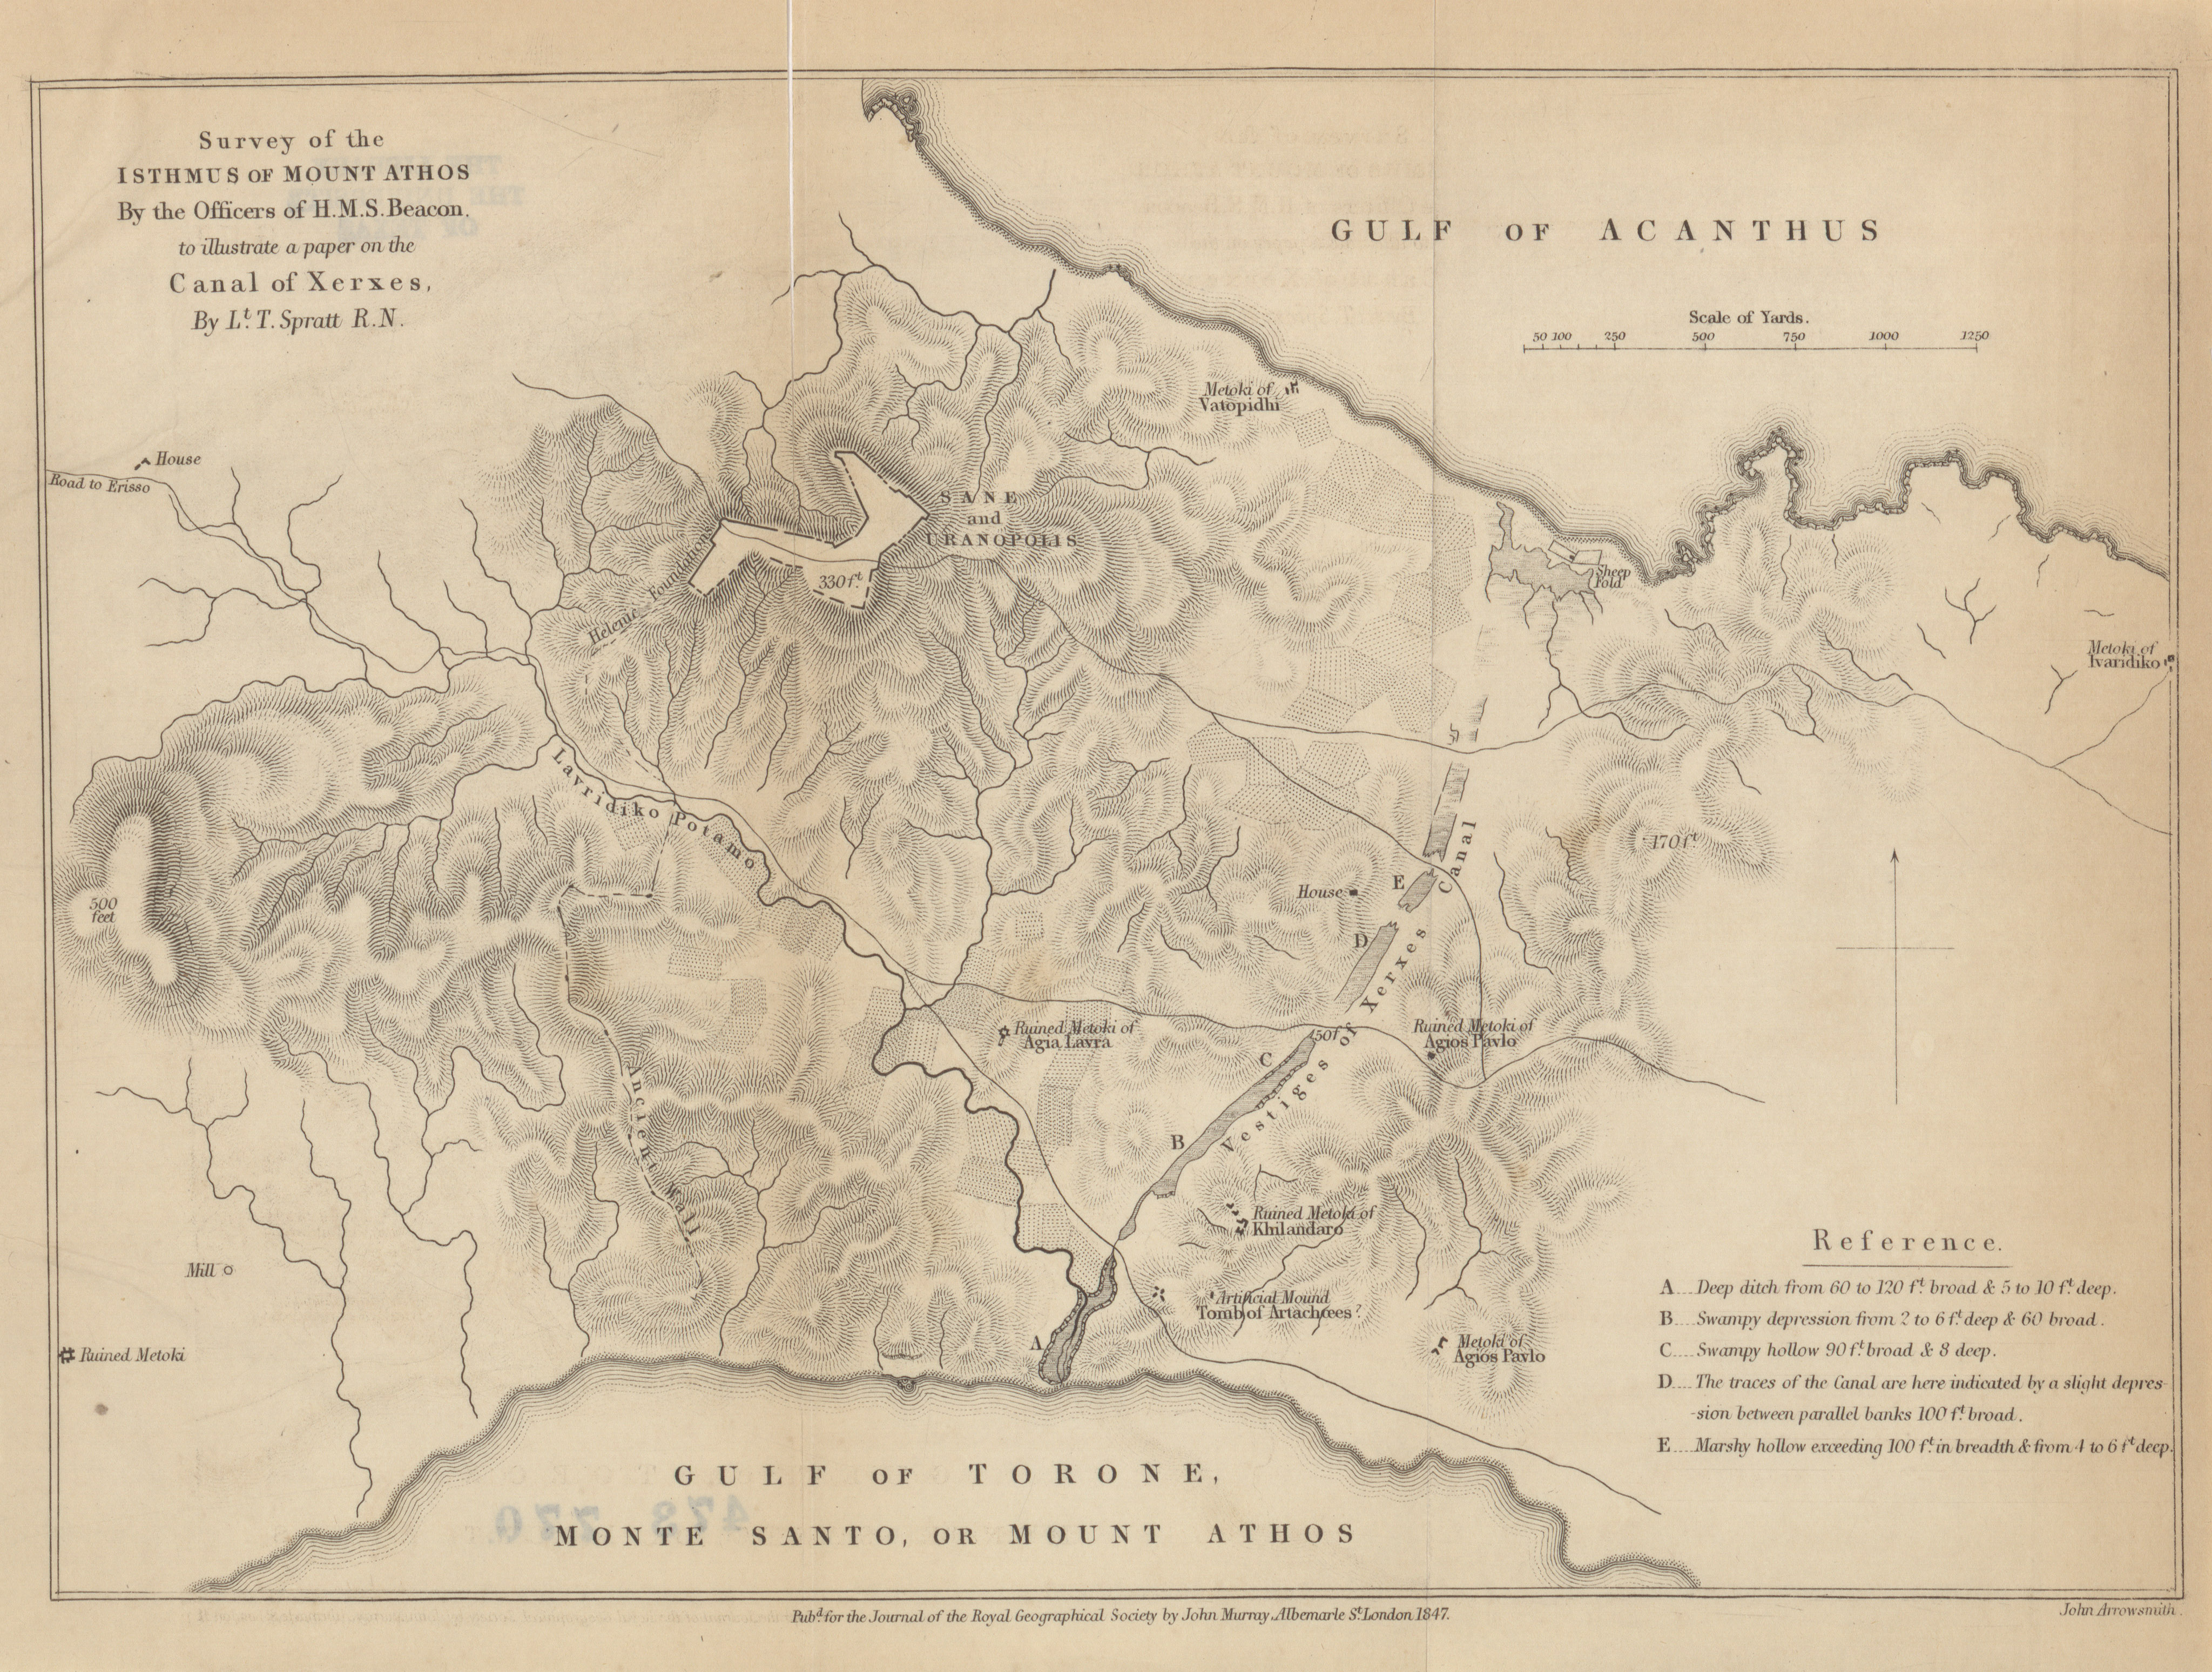 isthmus of mount athos by the officers of h m s beacon to ilrate a paper on the c of xer lt spratt r n 1847